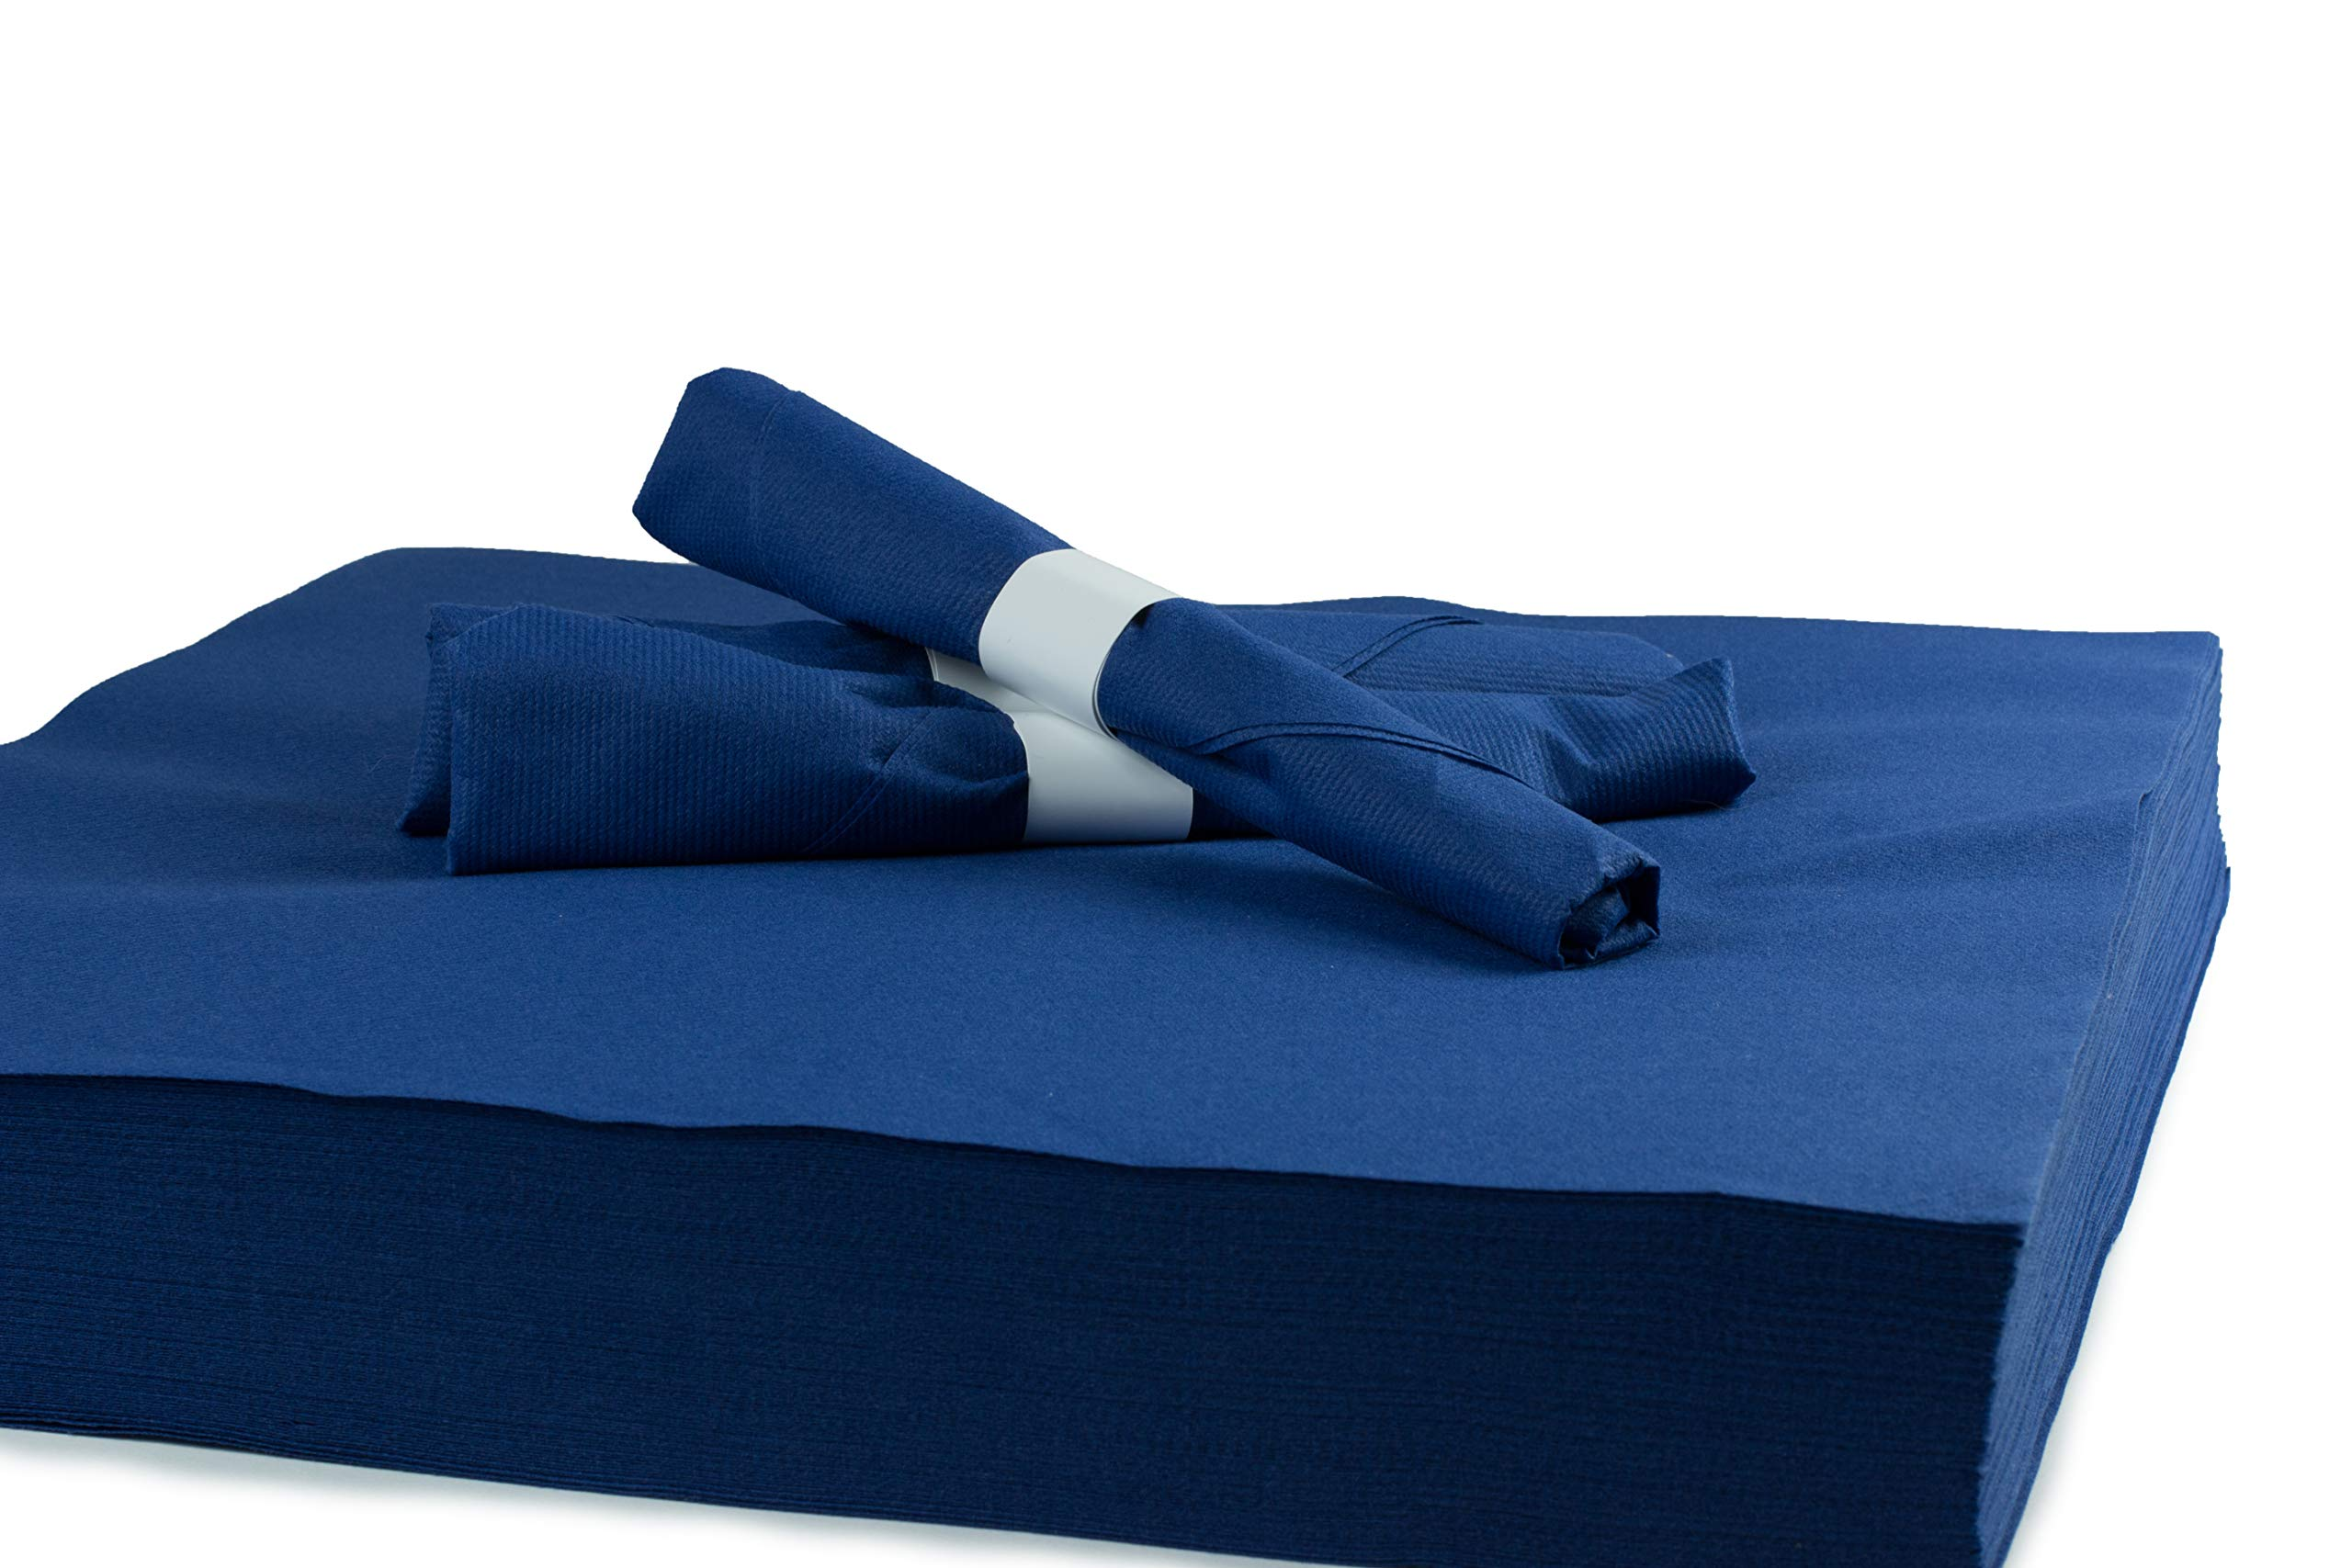 """Simulinen Dinner Napkins - Like Cloth Yet Disposable - Unfolded 16""""x16"""" (Blue 250 Count)"""